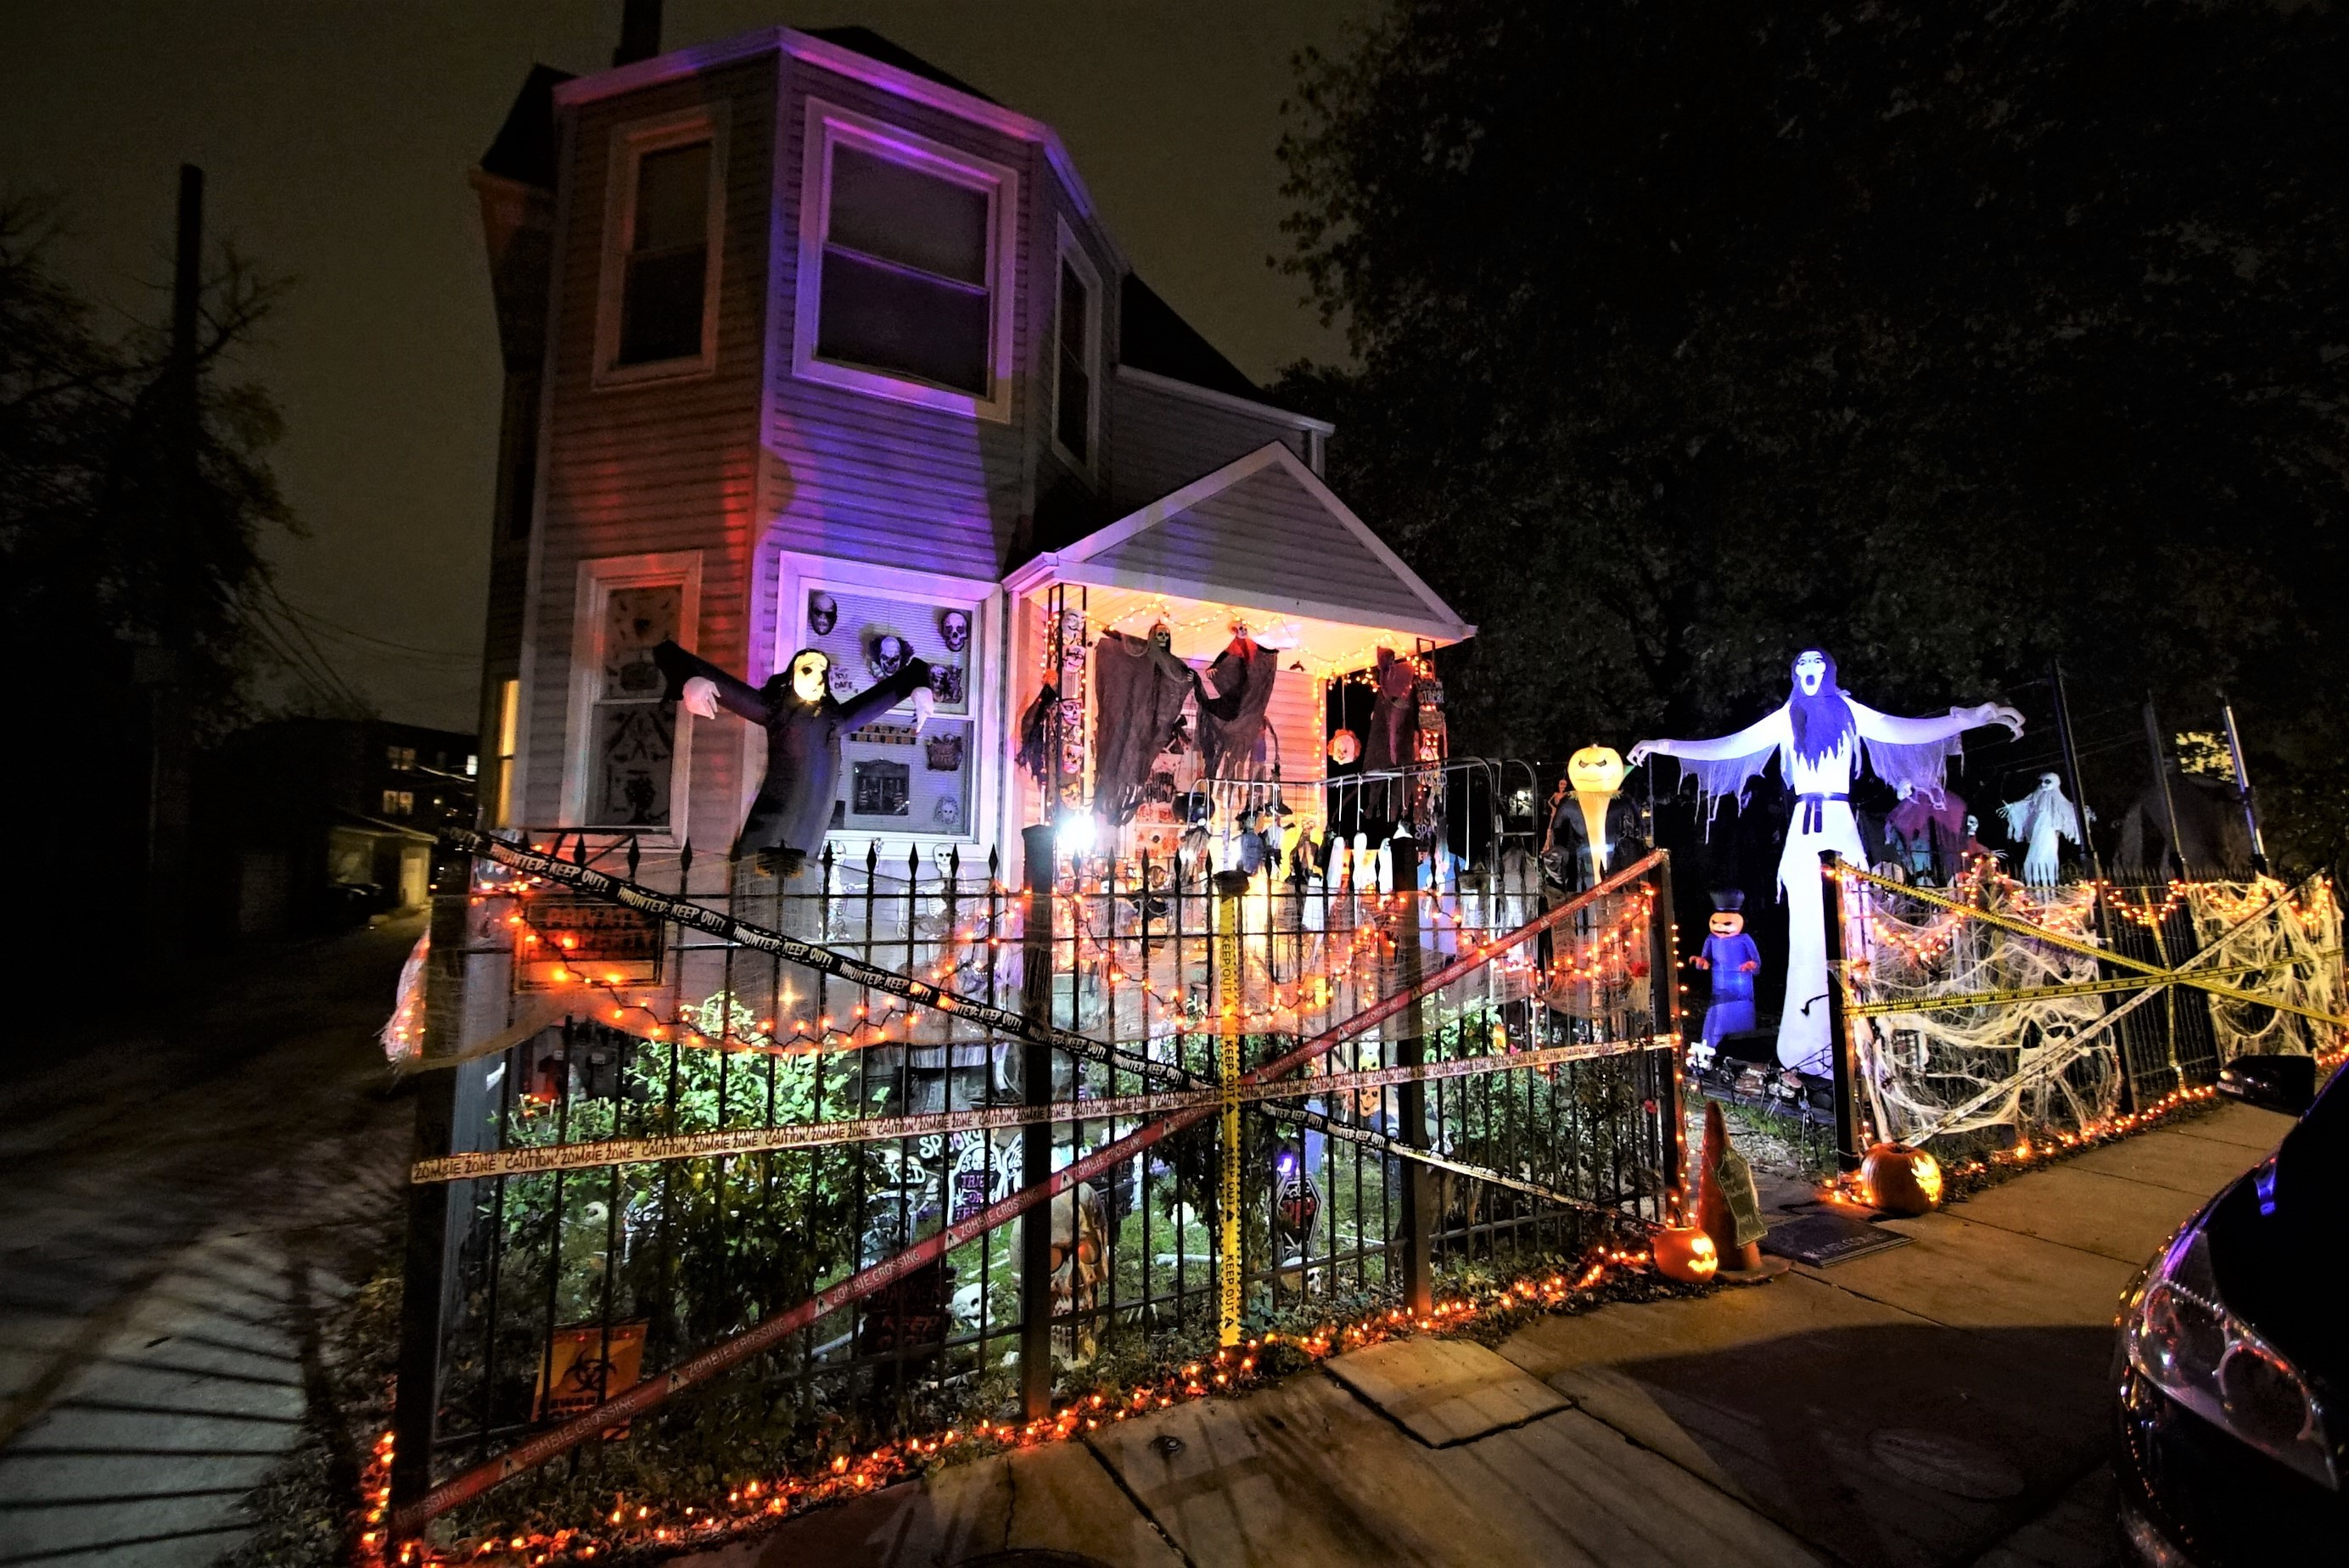 Take a look at this over-the-top DIY haunted house in Avondale